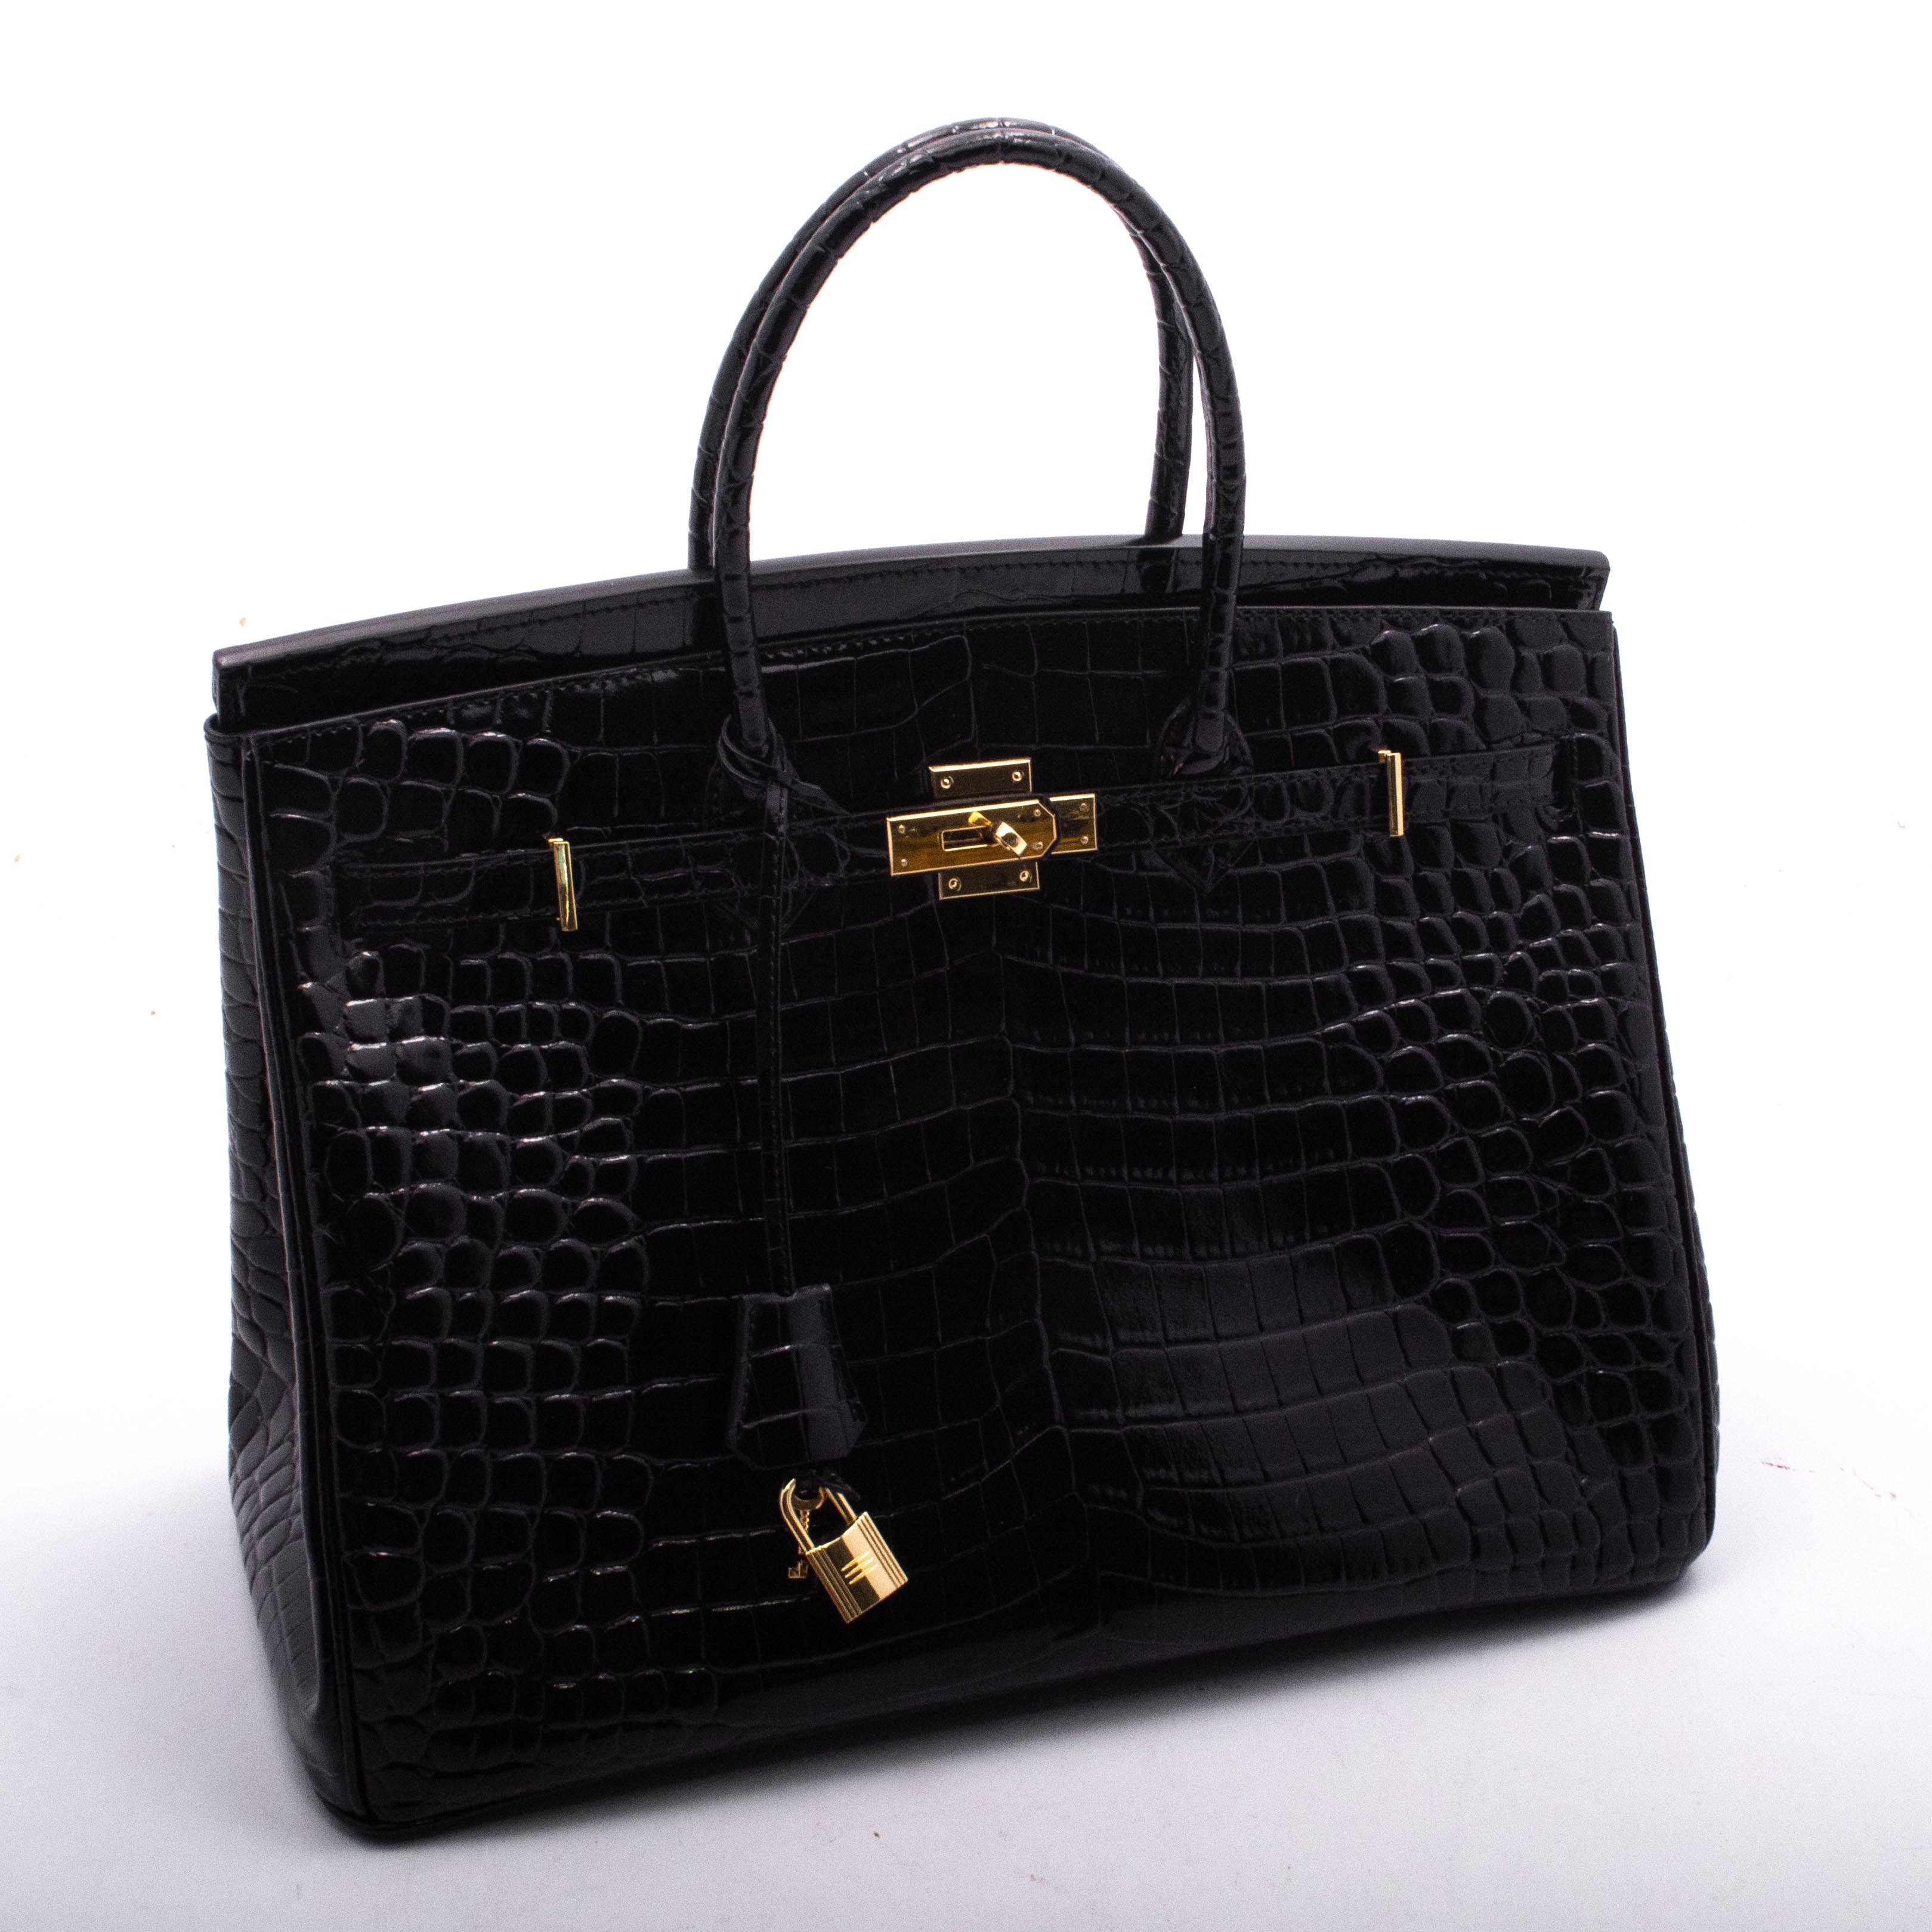 Faux Crocodile Embossed Black Patent Leather Tote